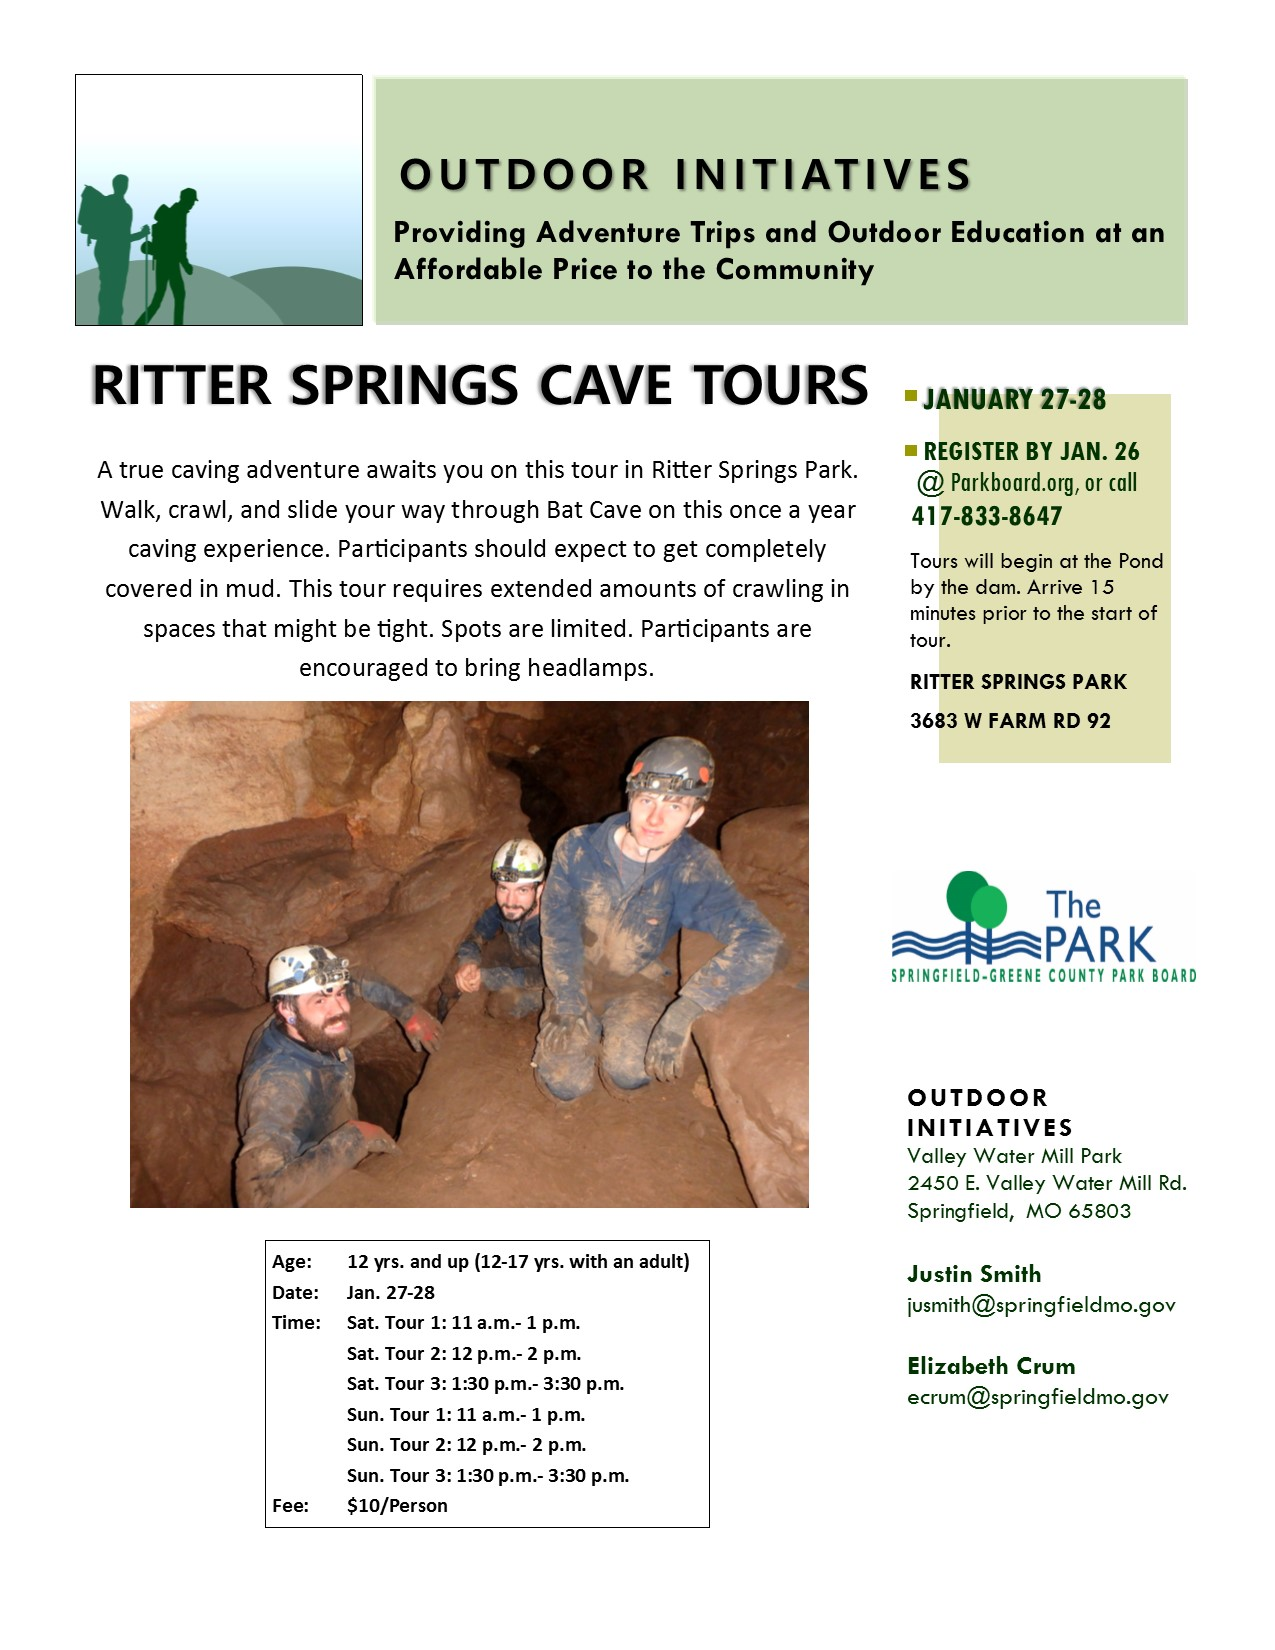 Ritter Springs Cave Tours